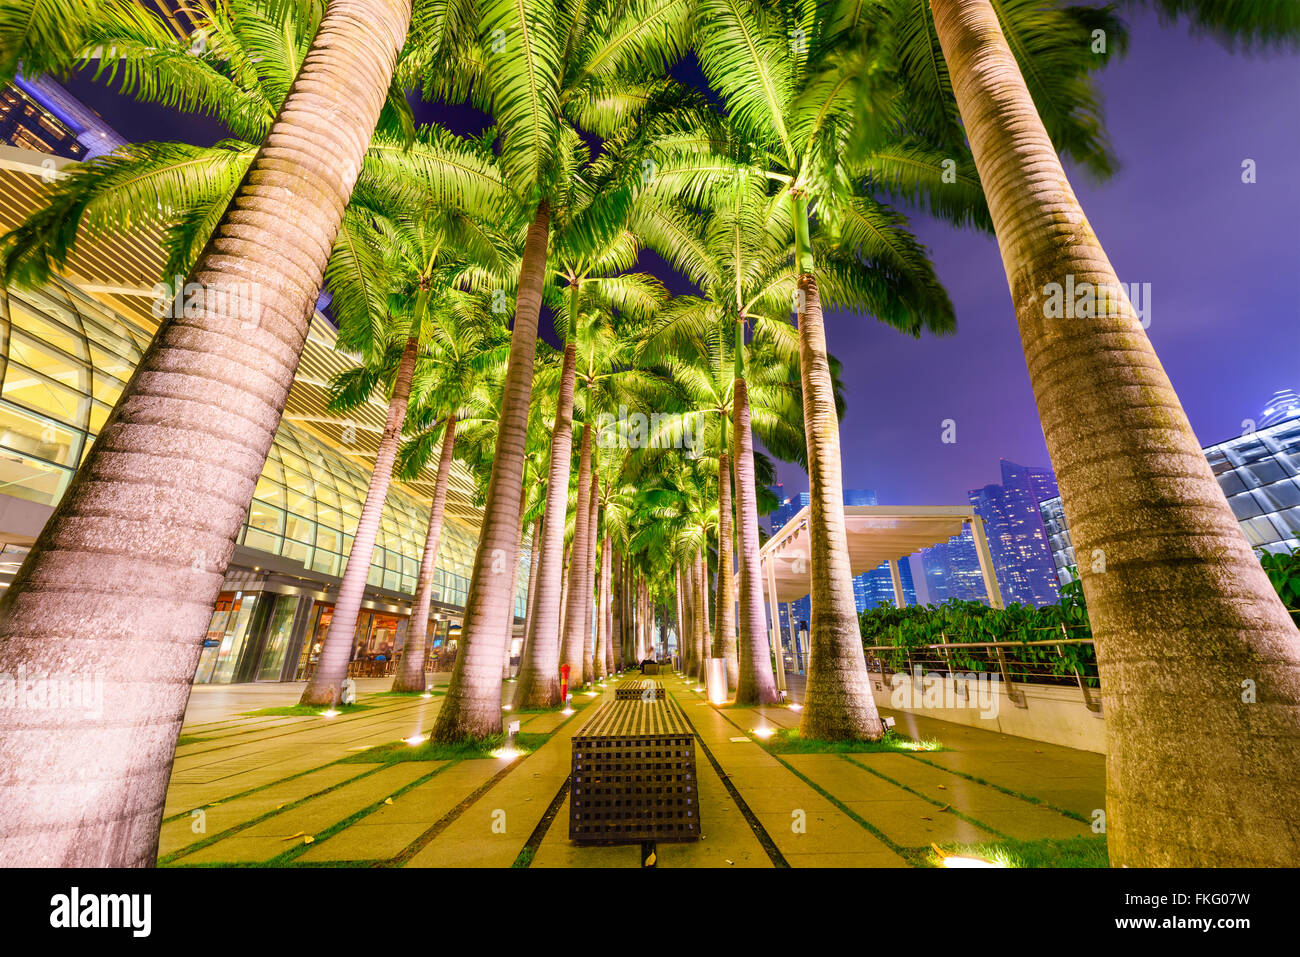 Singapore at the palm tree lined waterfront. - Stock Image